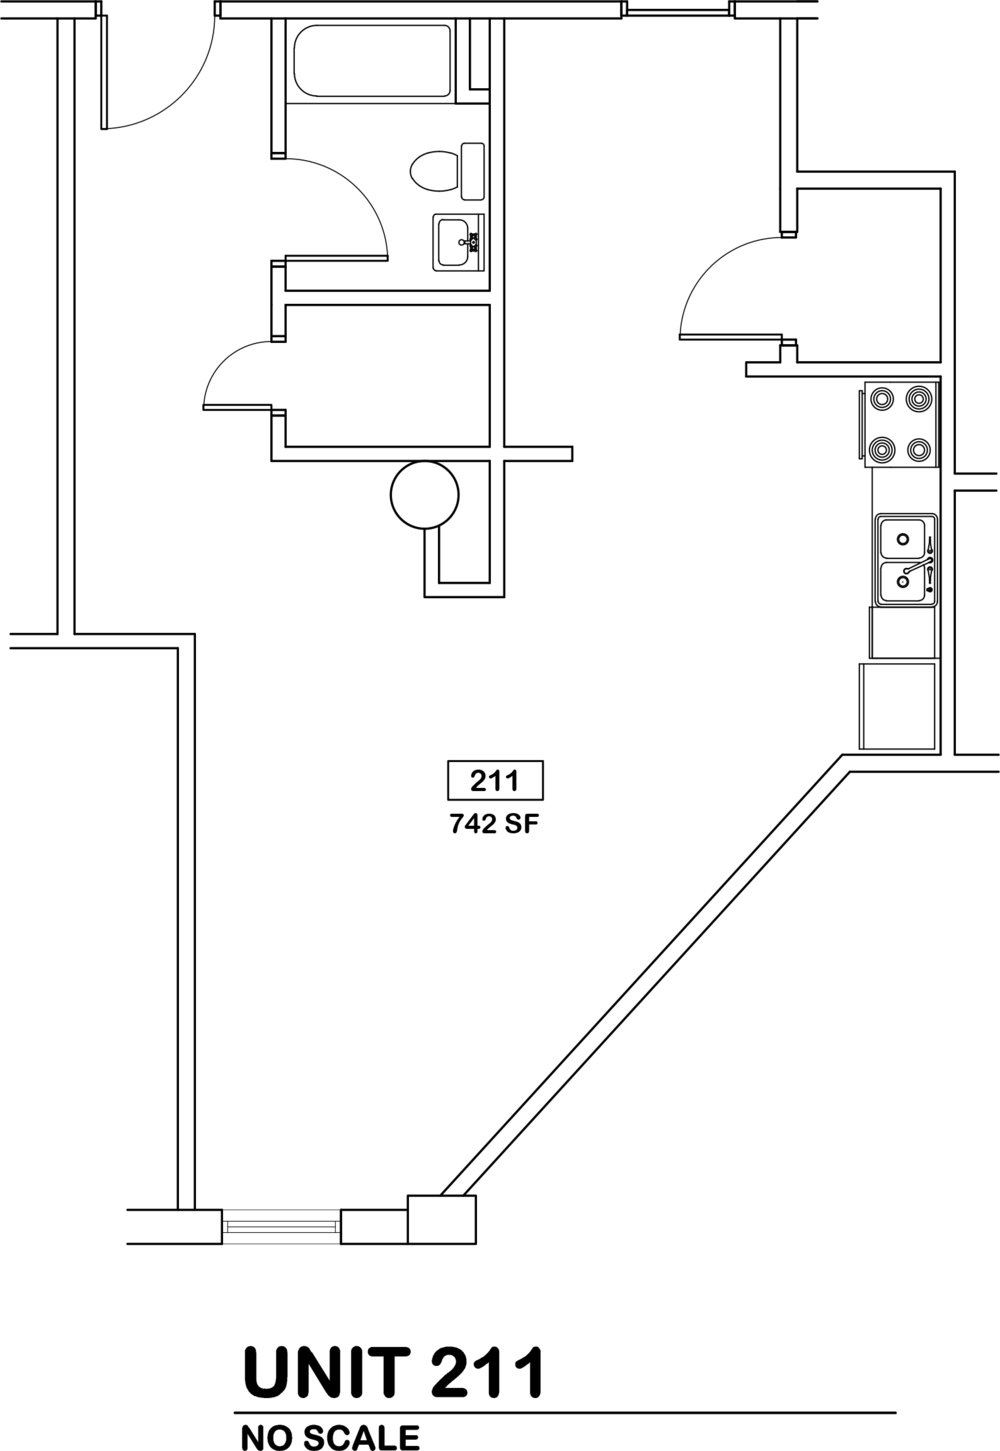 Hybrid Studio / 1 bath   $760 / 742 sq ft